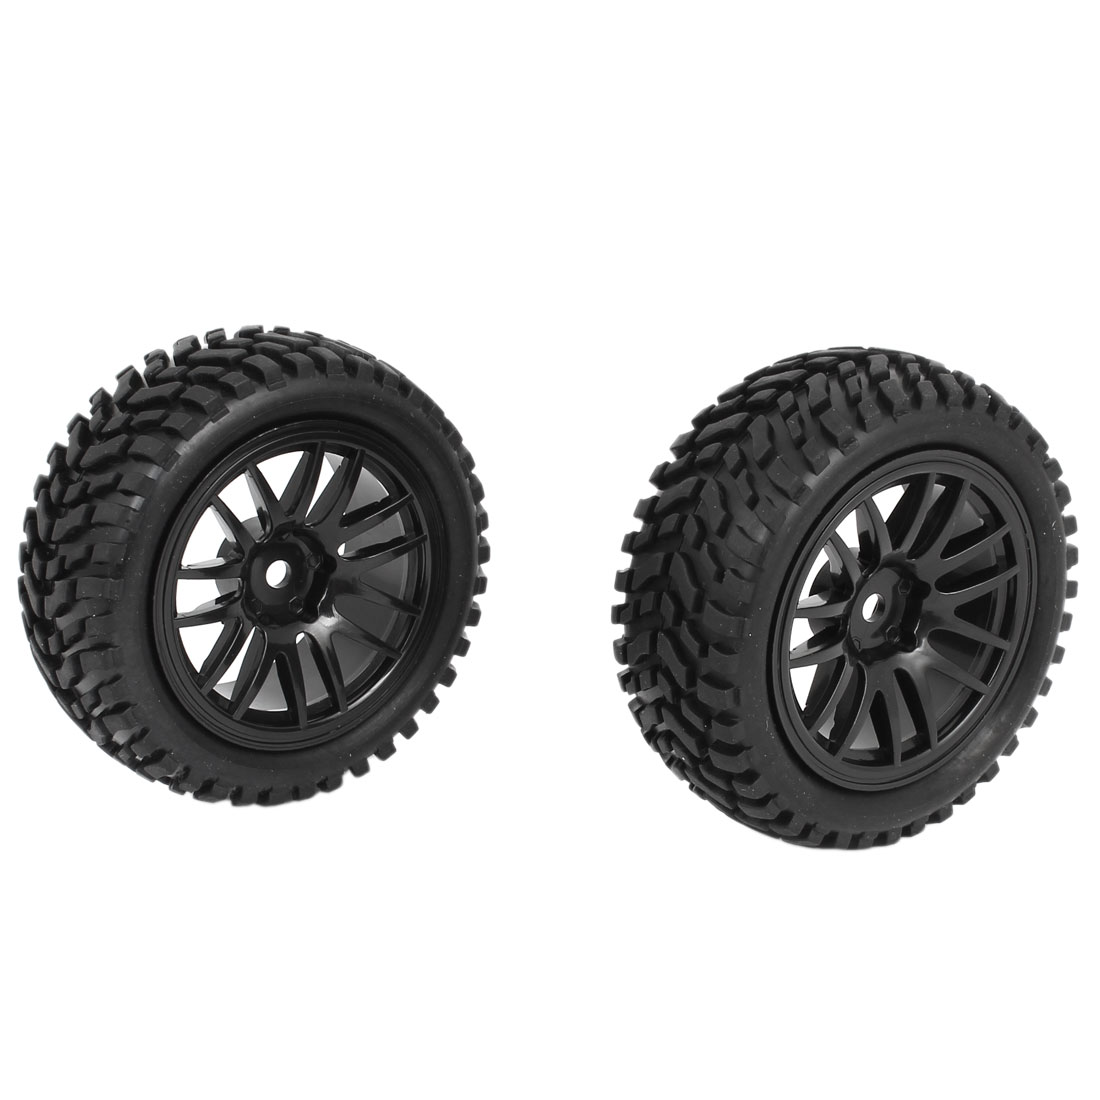 2pcs Black Wheel Rim Tyre 75mm Dia for 1:10 1:16 RC Model Flat Racing Car Truck